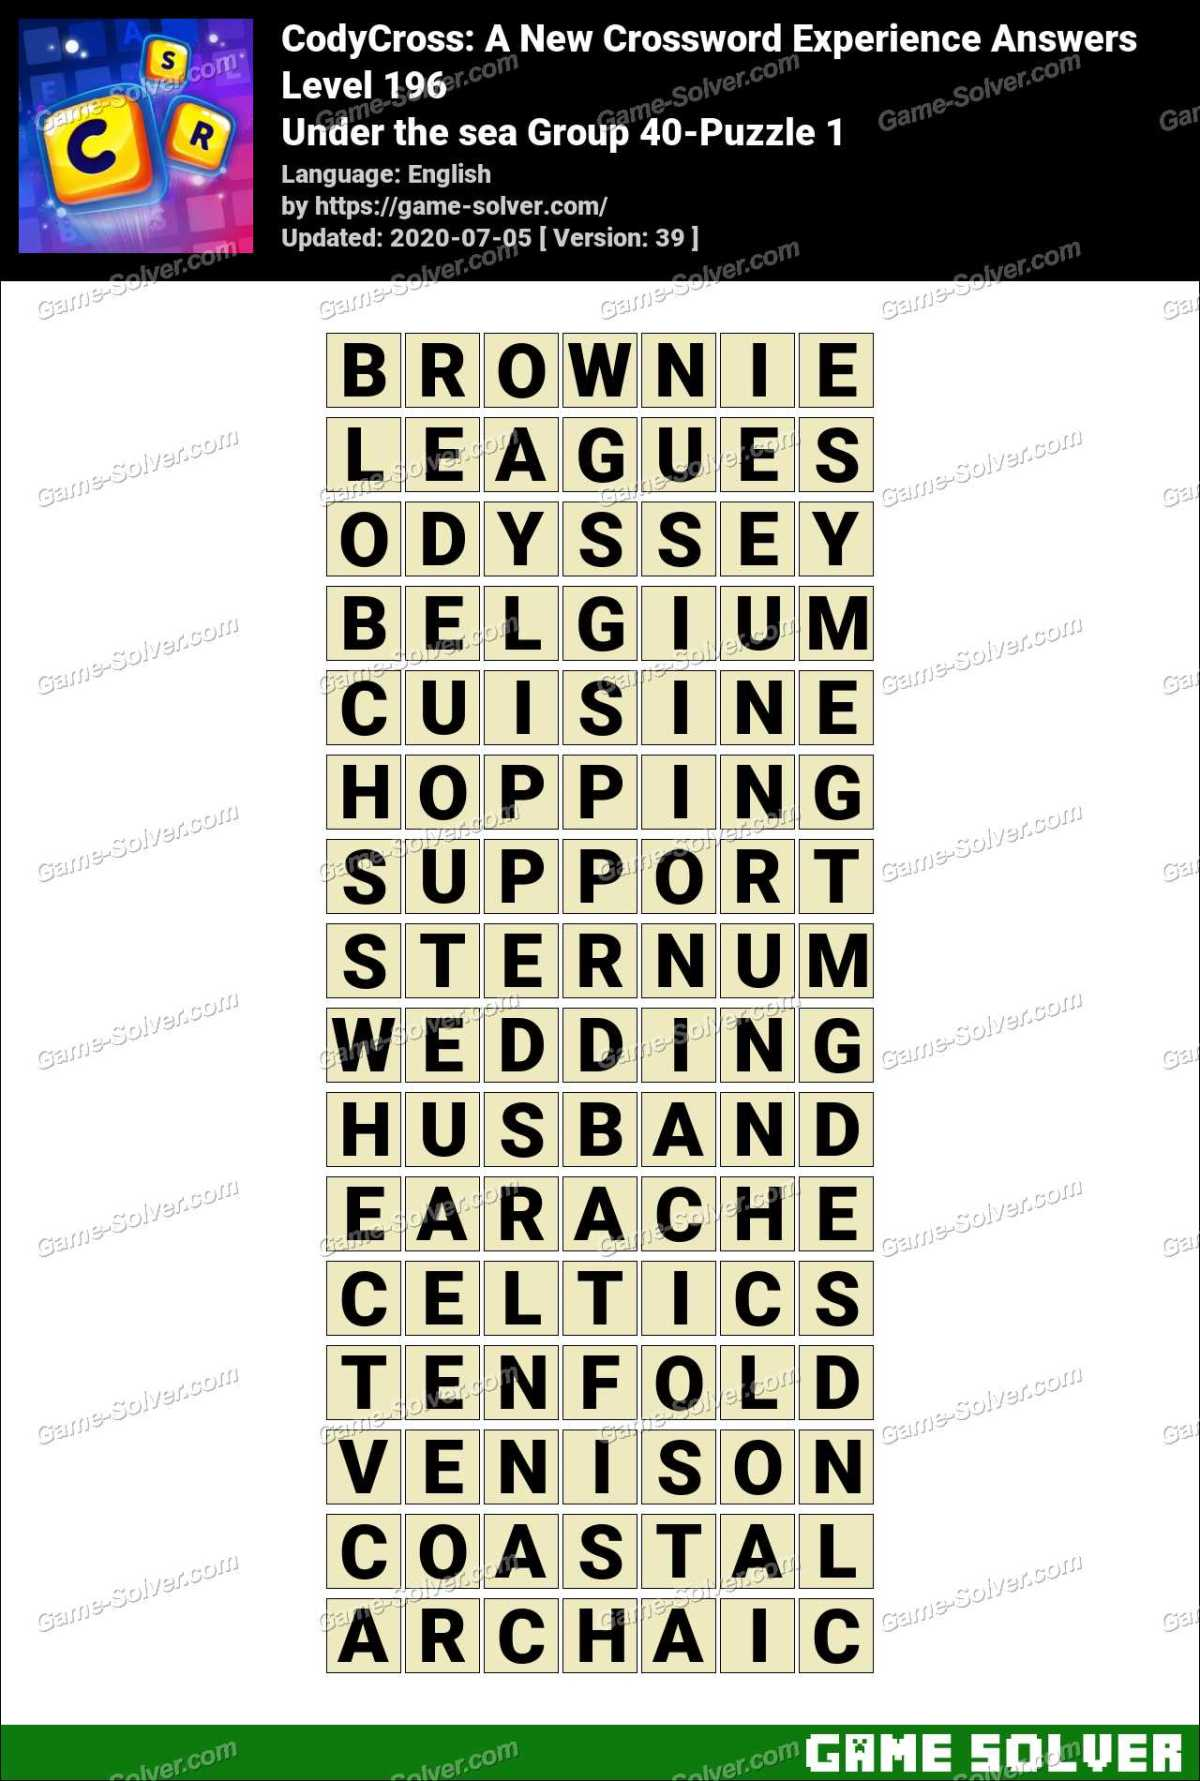 CodyCross Under the sea Group 40-Puzzle 1 Answers